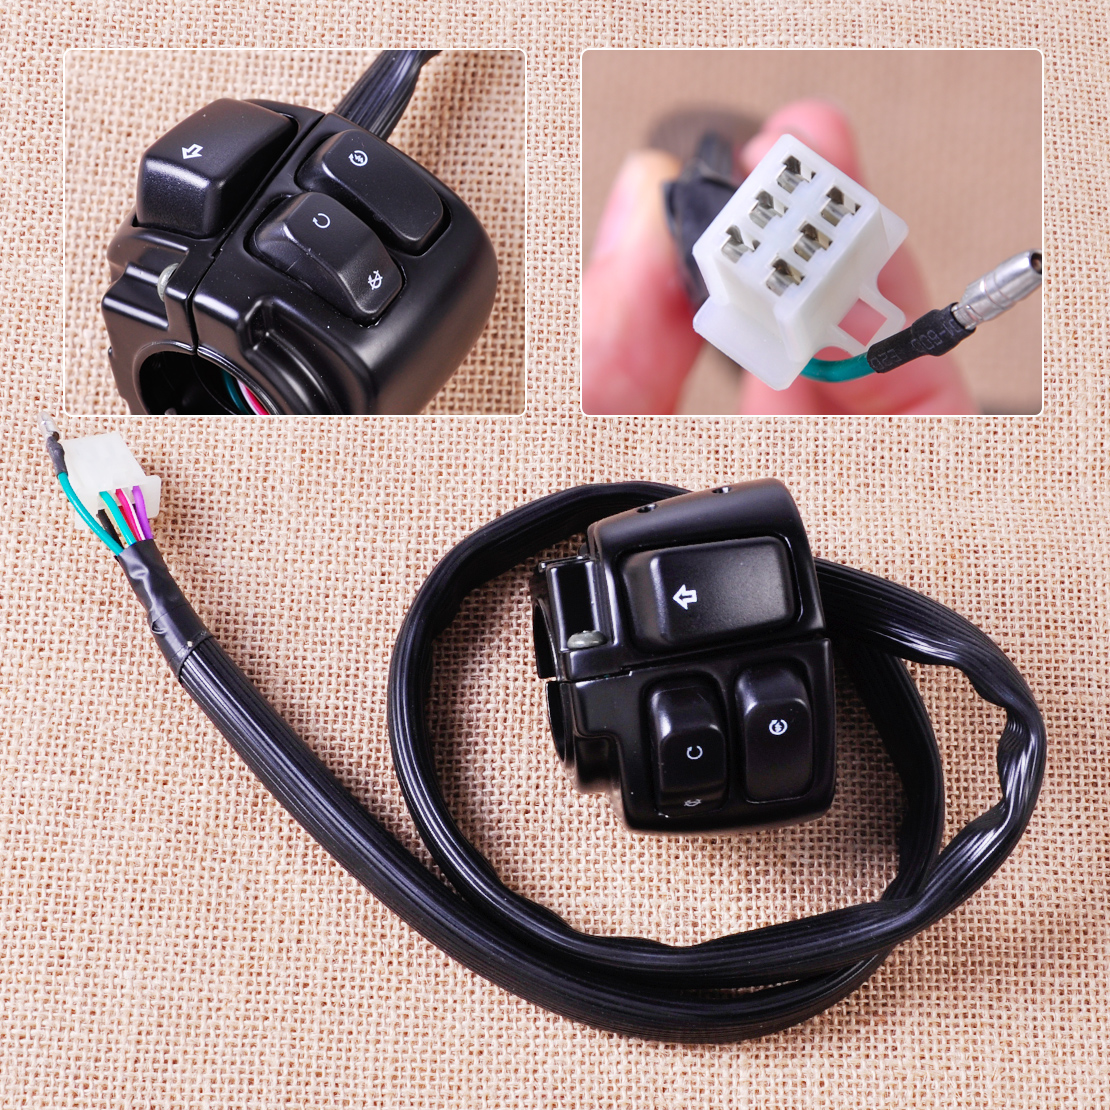 medium resolution of citall motorcycle 1 handlebar ignition turn signal switch wiring harness for harley softail dyna sportster 1200 883 v rod in motorcycle switches from